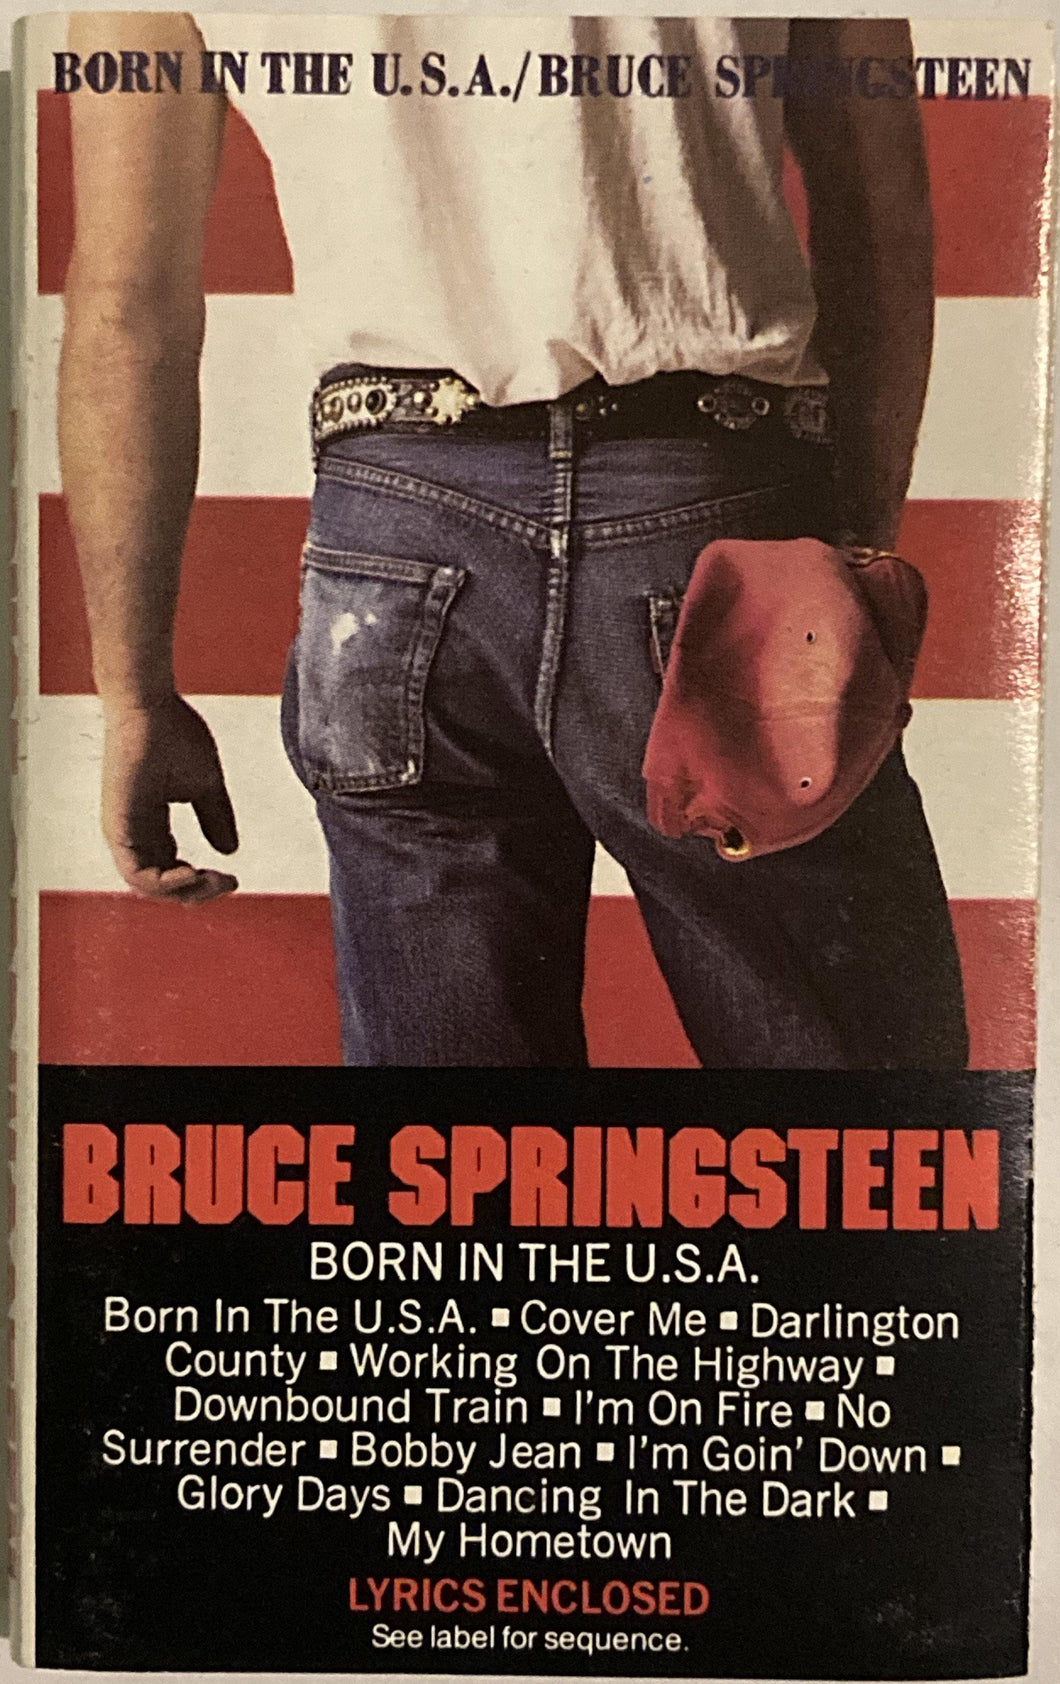 Bruce Springsteen - Born In The USA CASSETTE TAPE VG+ - 3rdfloortapes.com